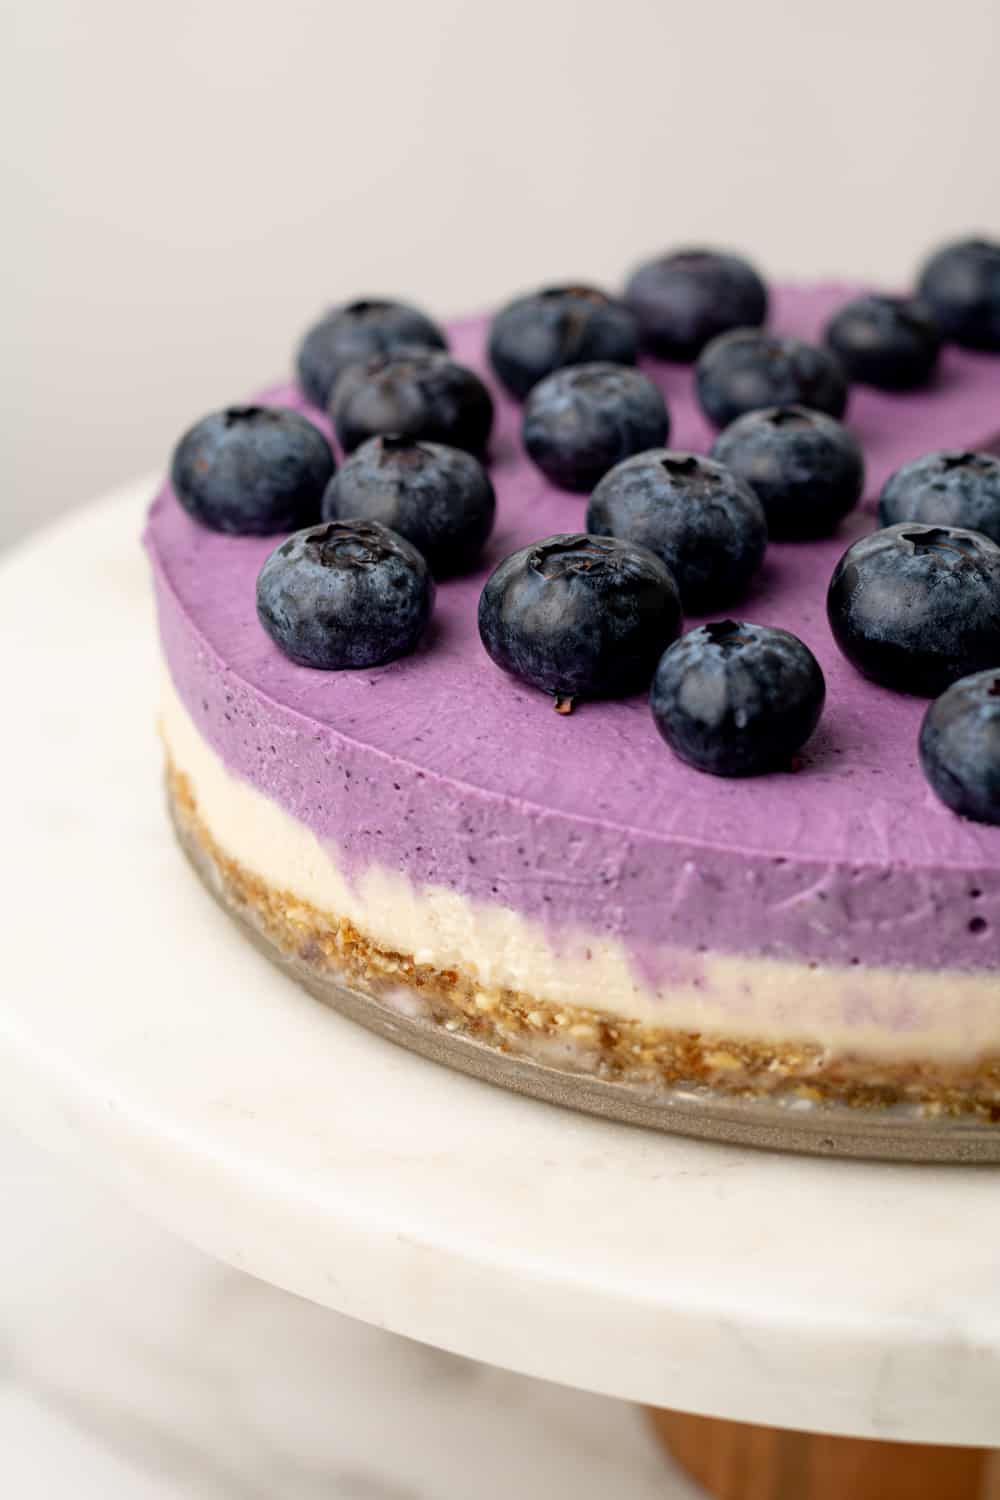 Close up image of the side of the blueberry cheesecake